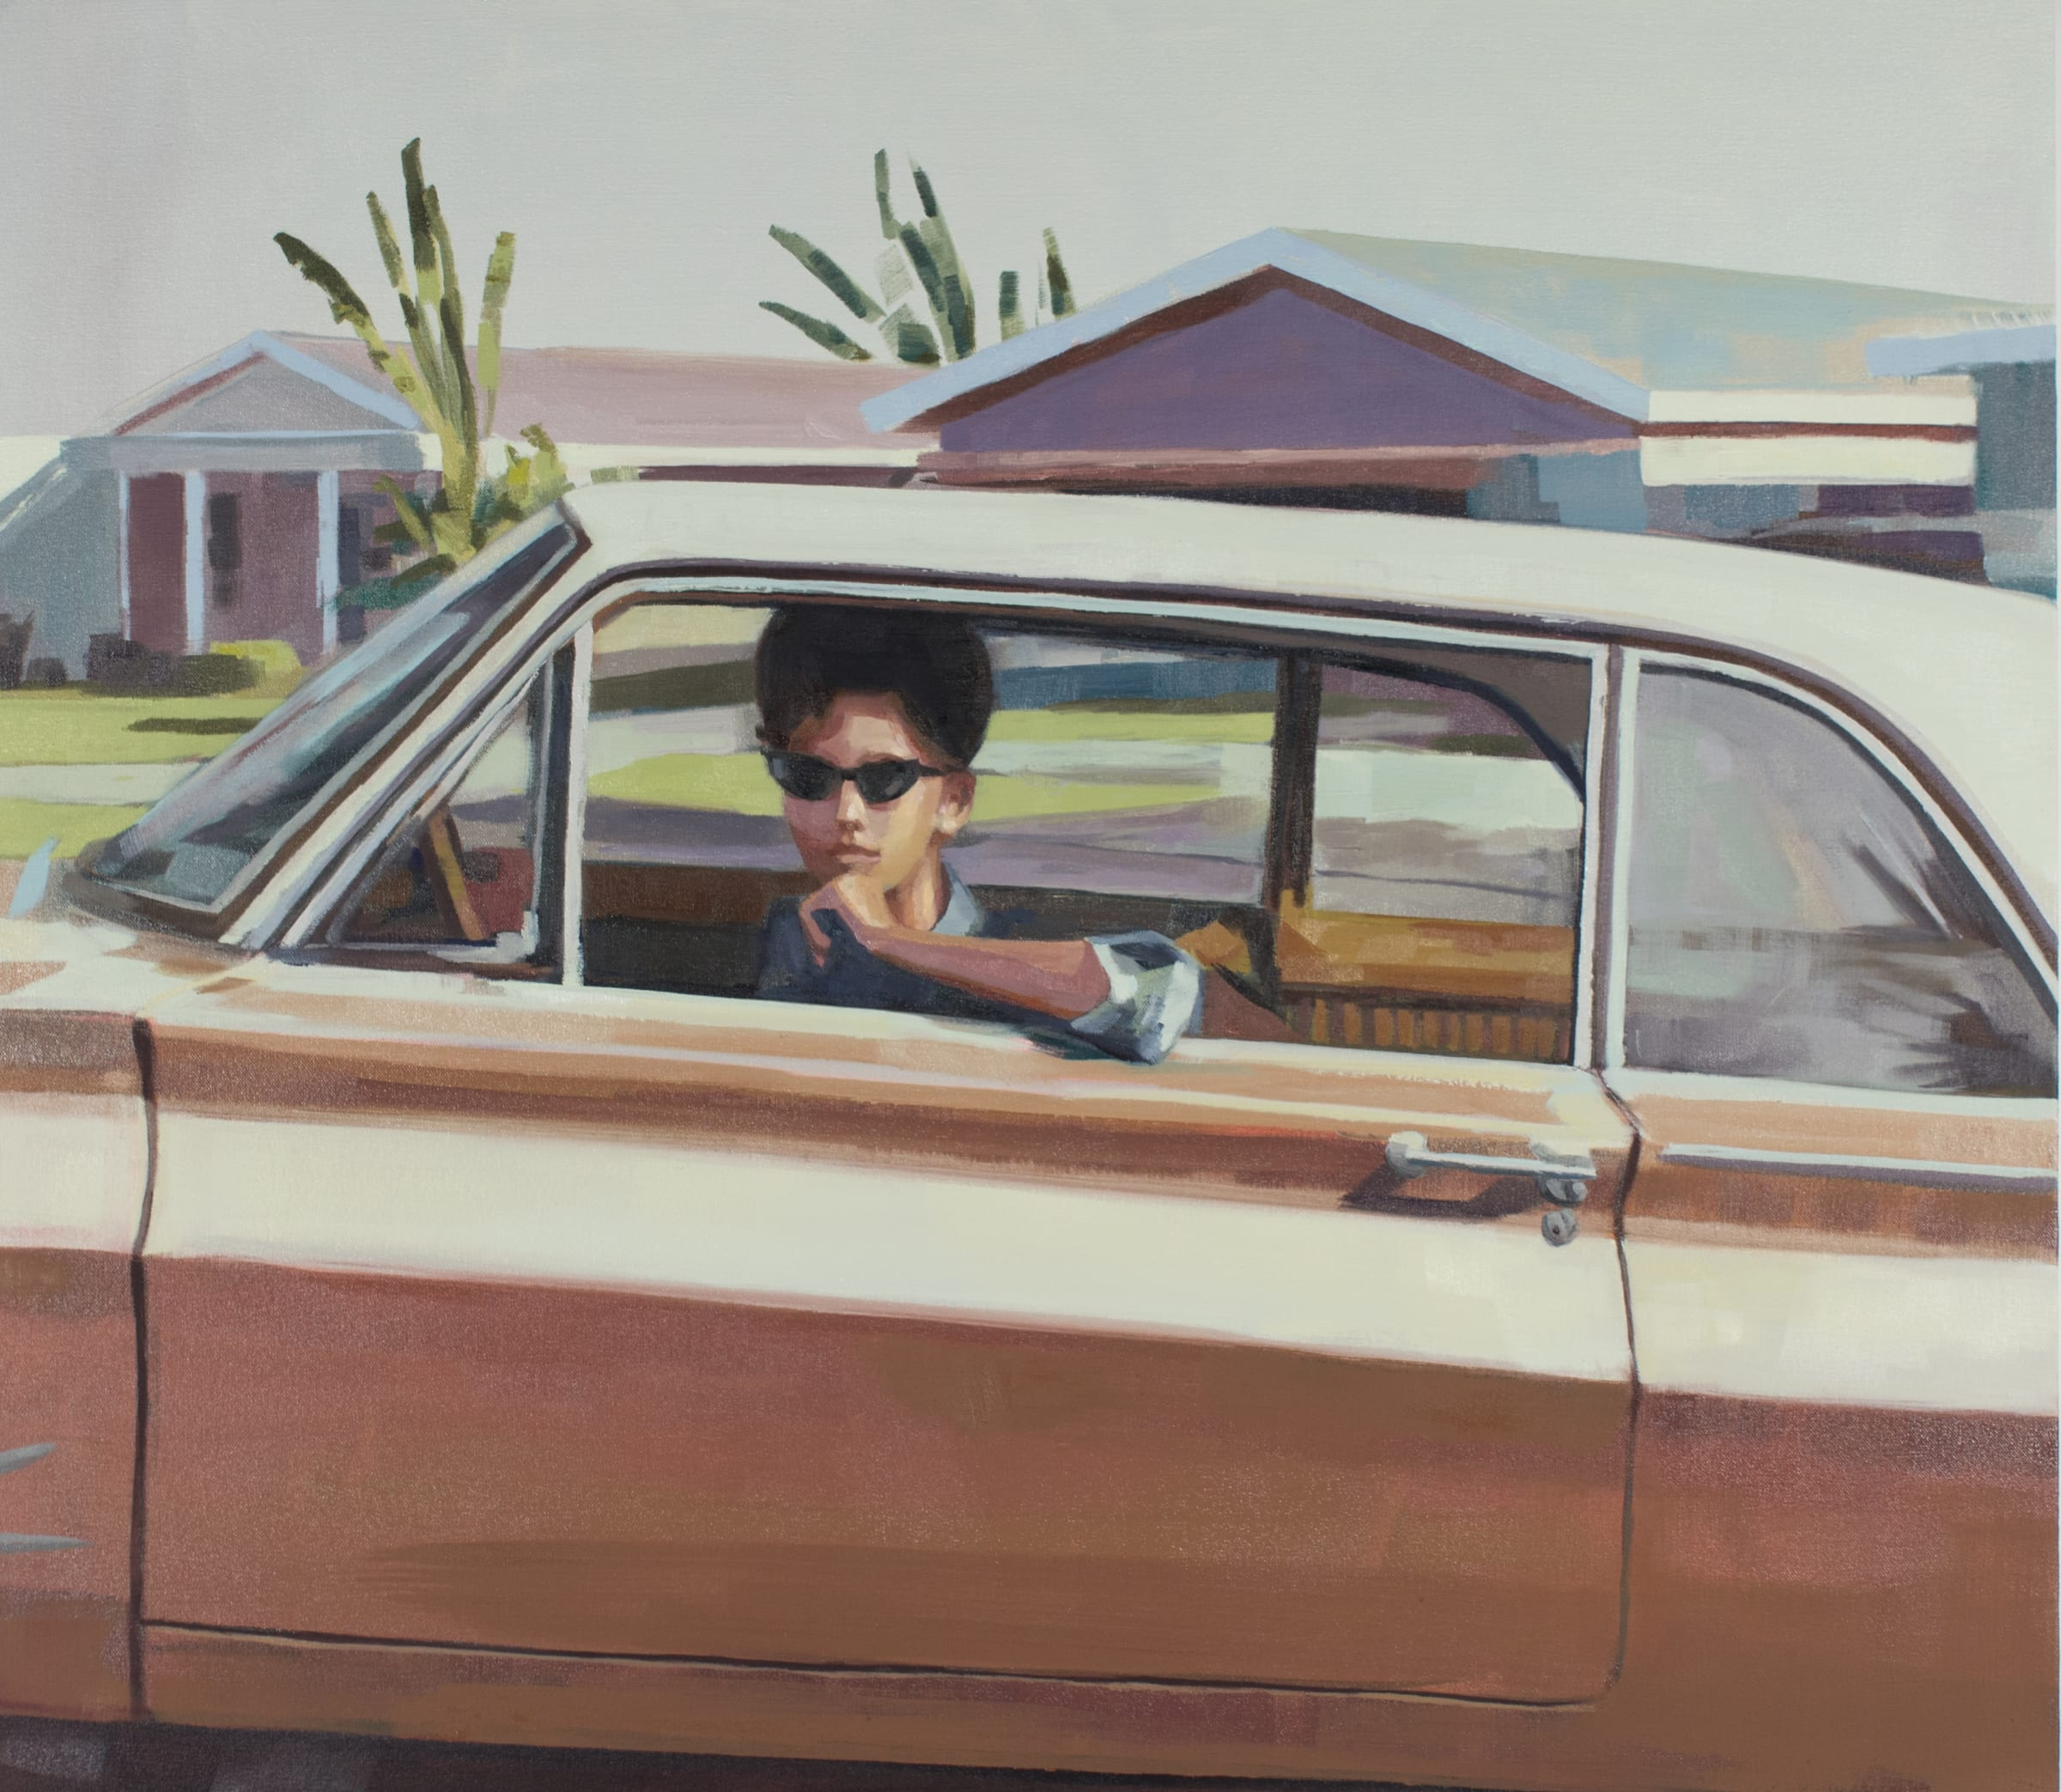 "<span class=""link fancybox-details-link""><a href=""/artists/89-kirsten-tradowsky/works/1235-kirsten-tradowsky-woman-in-gold-car/"">View Detail Page</a></span><div class=""artist""><strong>Kirsten Tradowsky</strong></div> <div class=""title""><em>Woman in Gold Car</em></div> <div class=""medium"">Oil on canvas</div> <div class=""dimensions"">28 x 32 inches</div>"